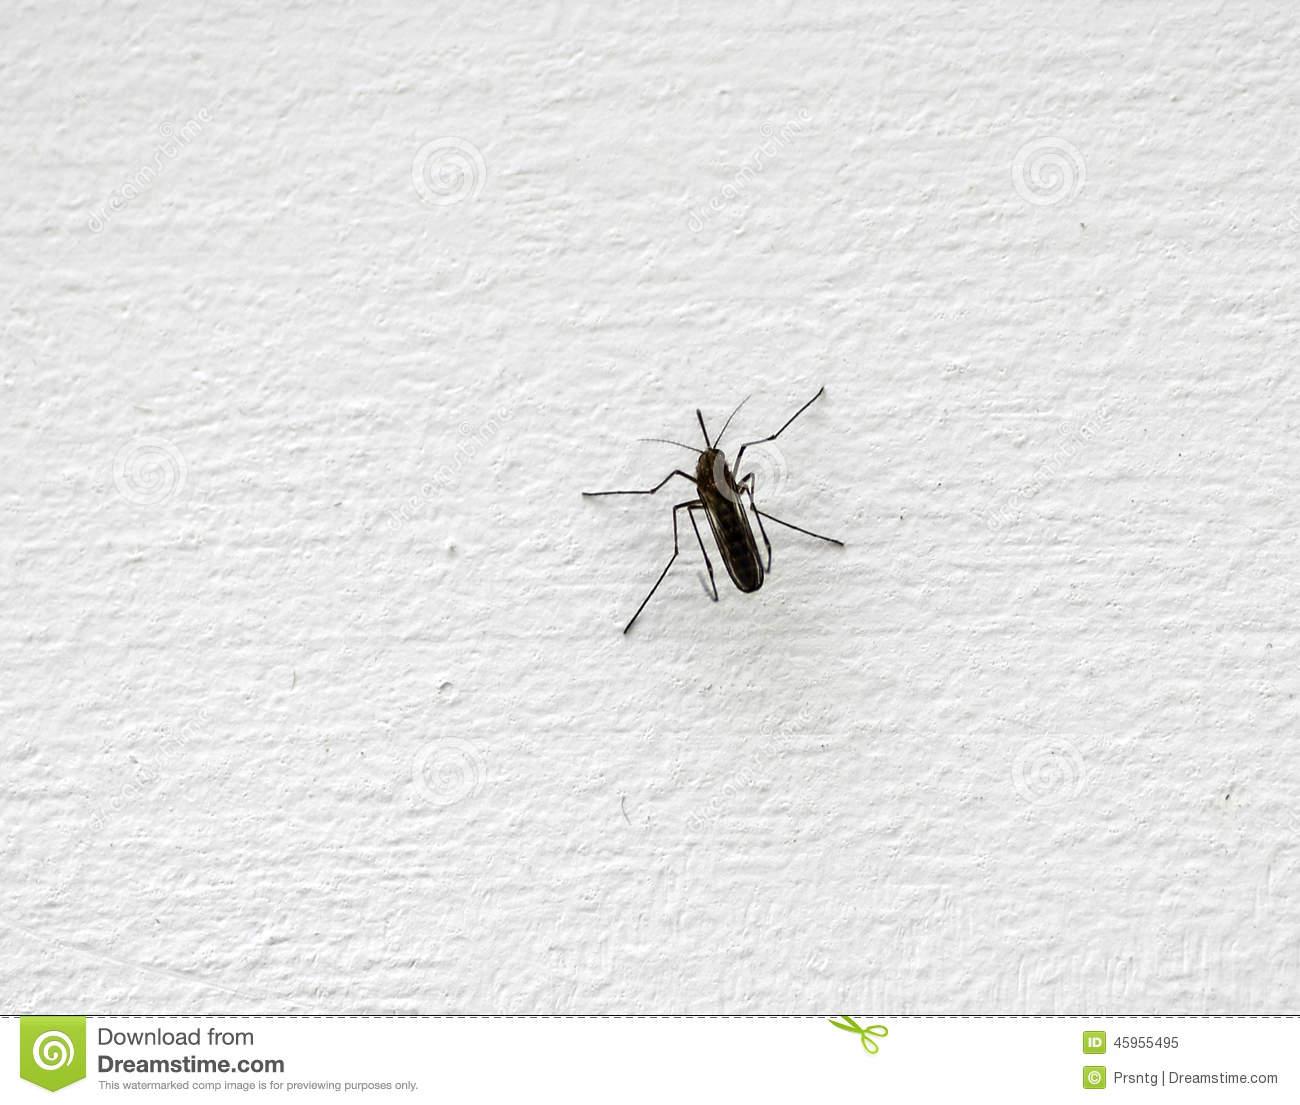 Mosquito on a wall